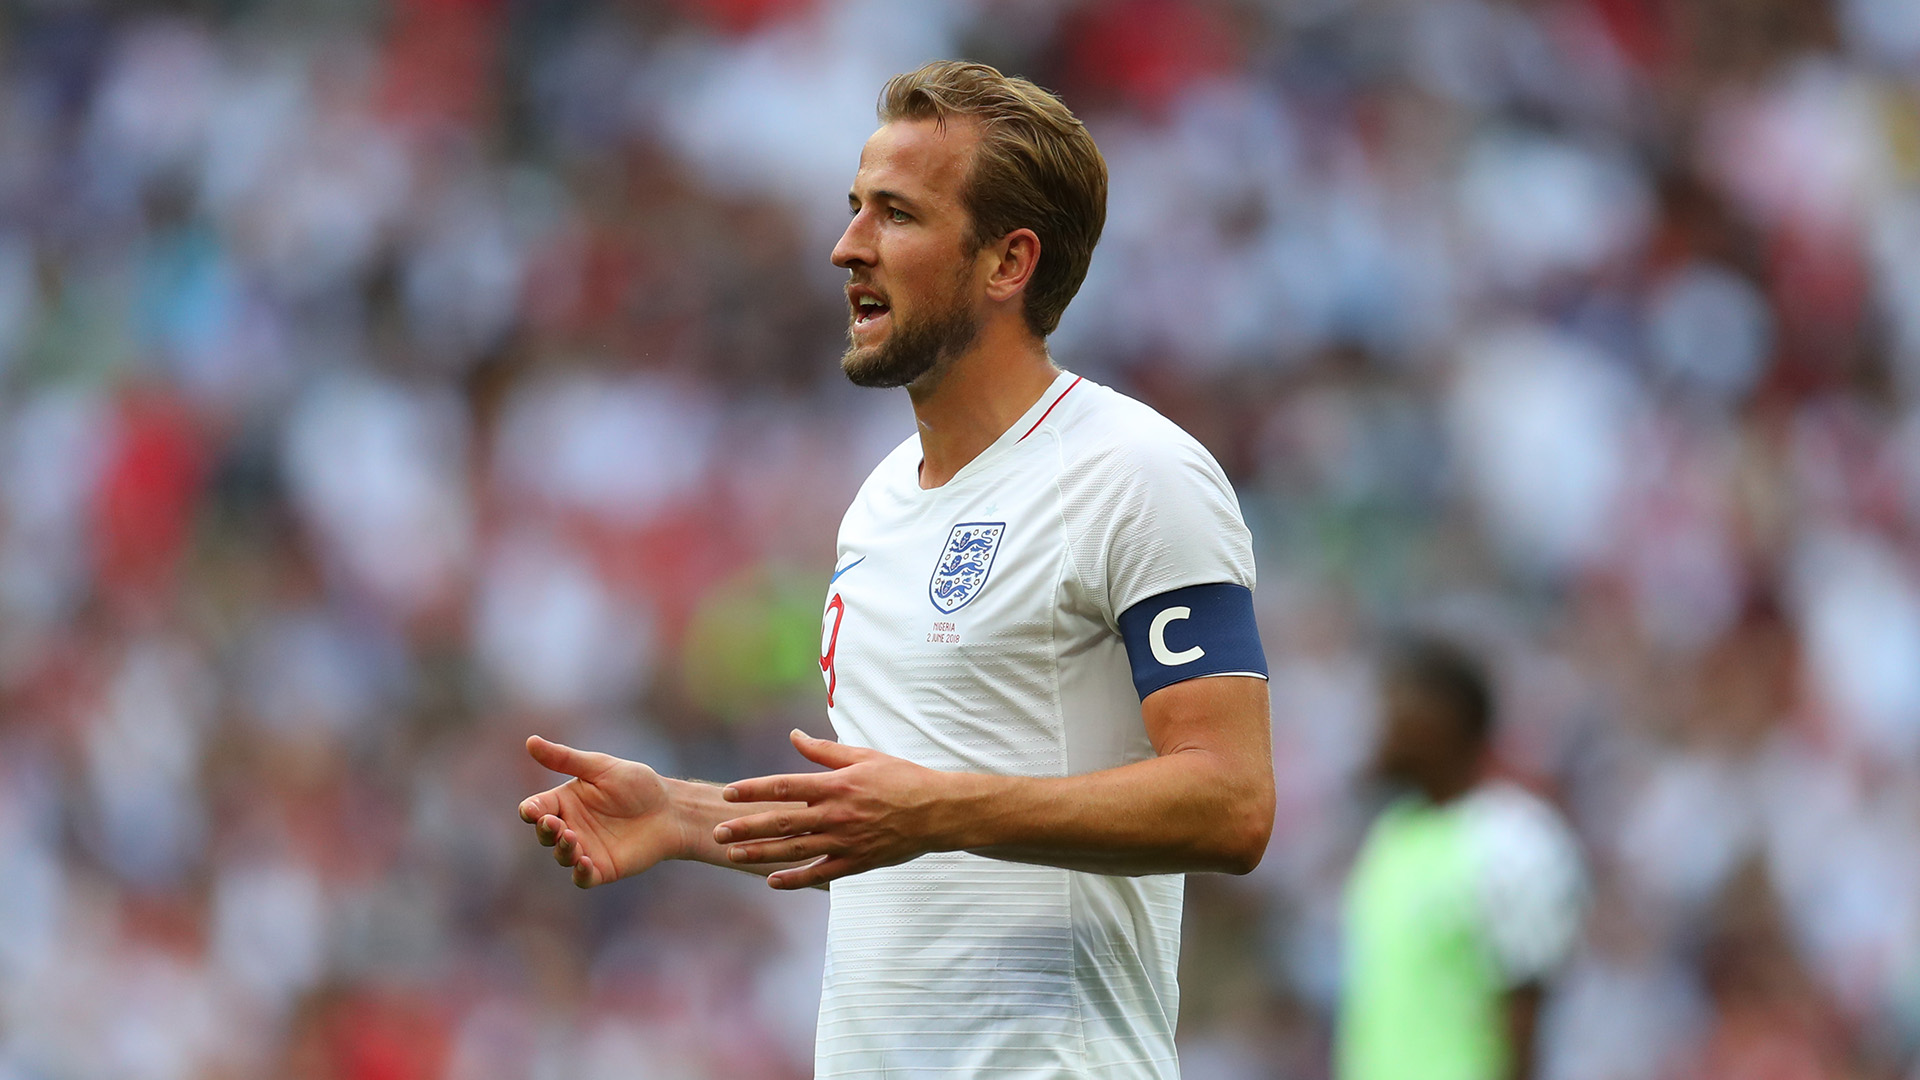 Harry Kane's last minute header hands England win against Tunisia